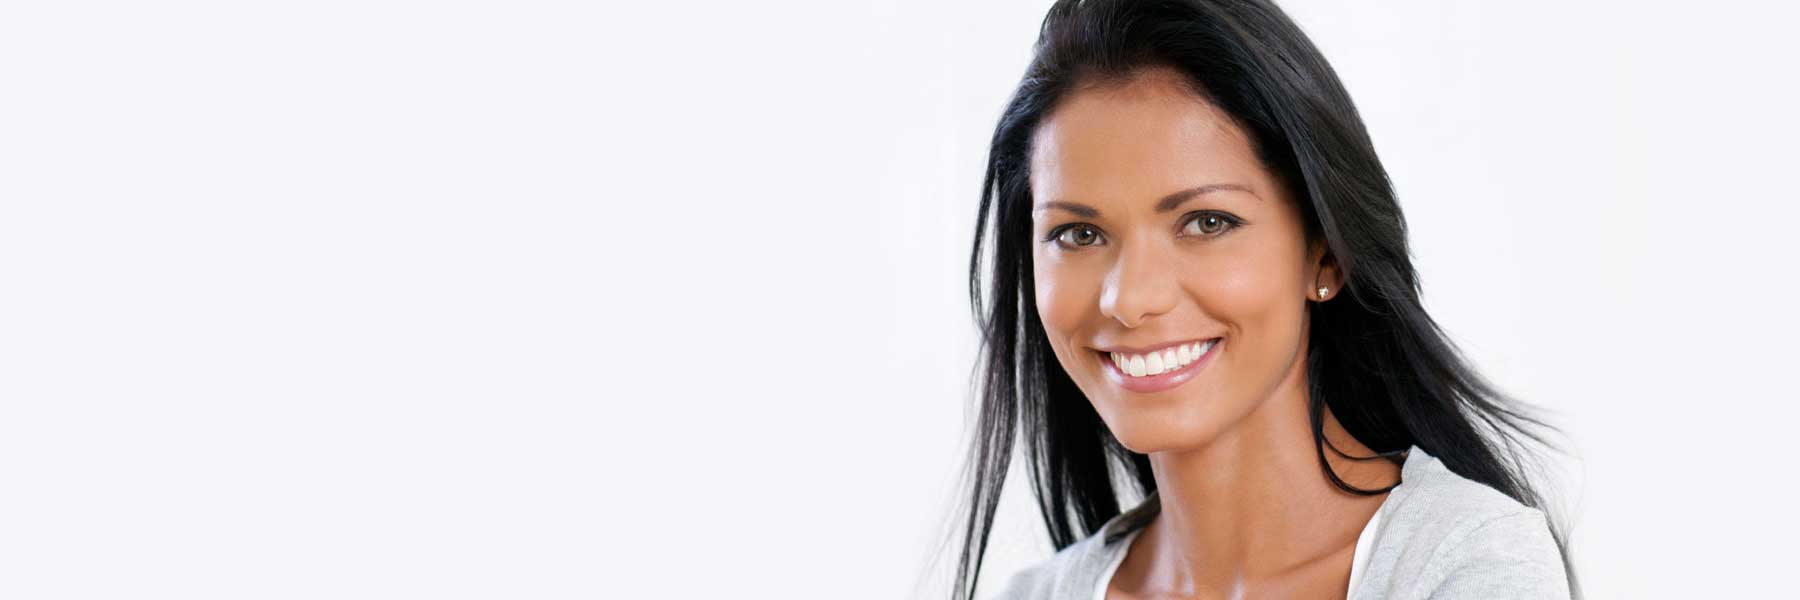 Dental Implants | Dentist